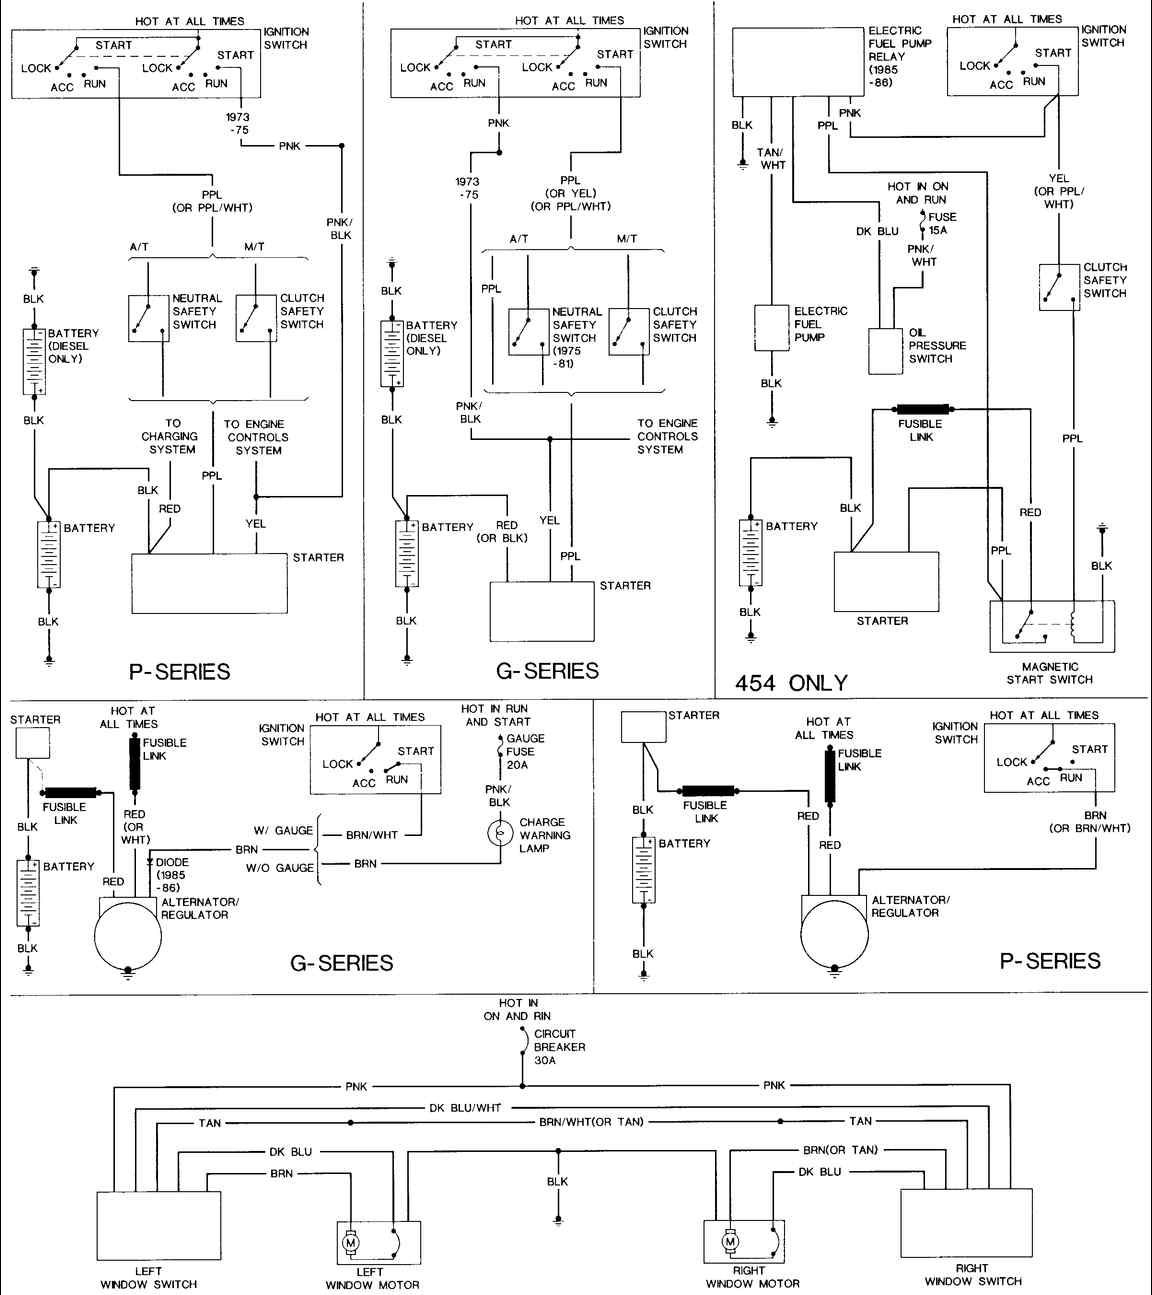 0c73623a181dc376dbb4777e2029d285 85 chevy truck wiring diagram 85 chevy van the steering column 1985 chevy truck wiring harness at bayanpartner.co